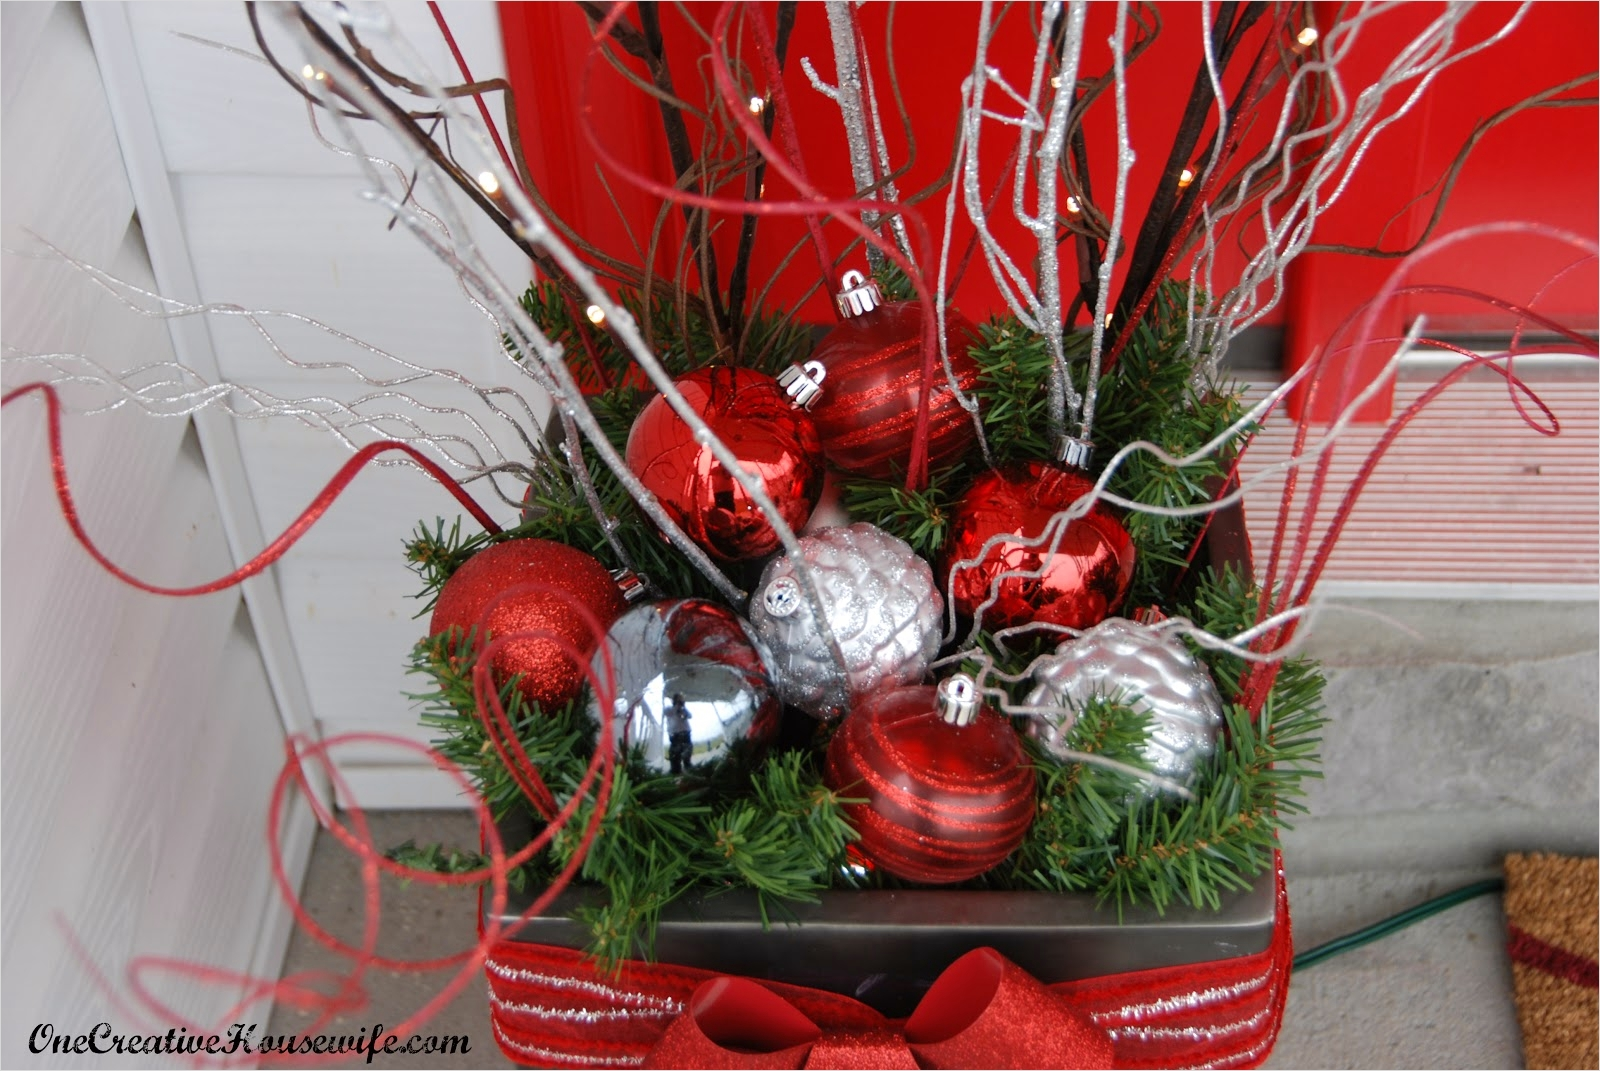 42 Beautiful Christmas Outdoor Pot Decorations Ideas 45 E Creative Housewife My Outdoor Christmas Decorations 6